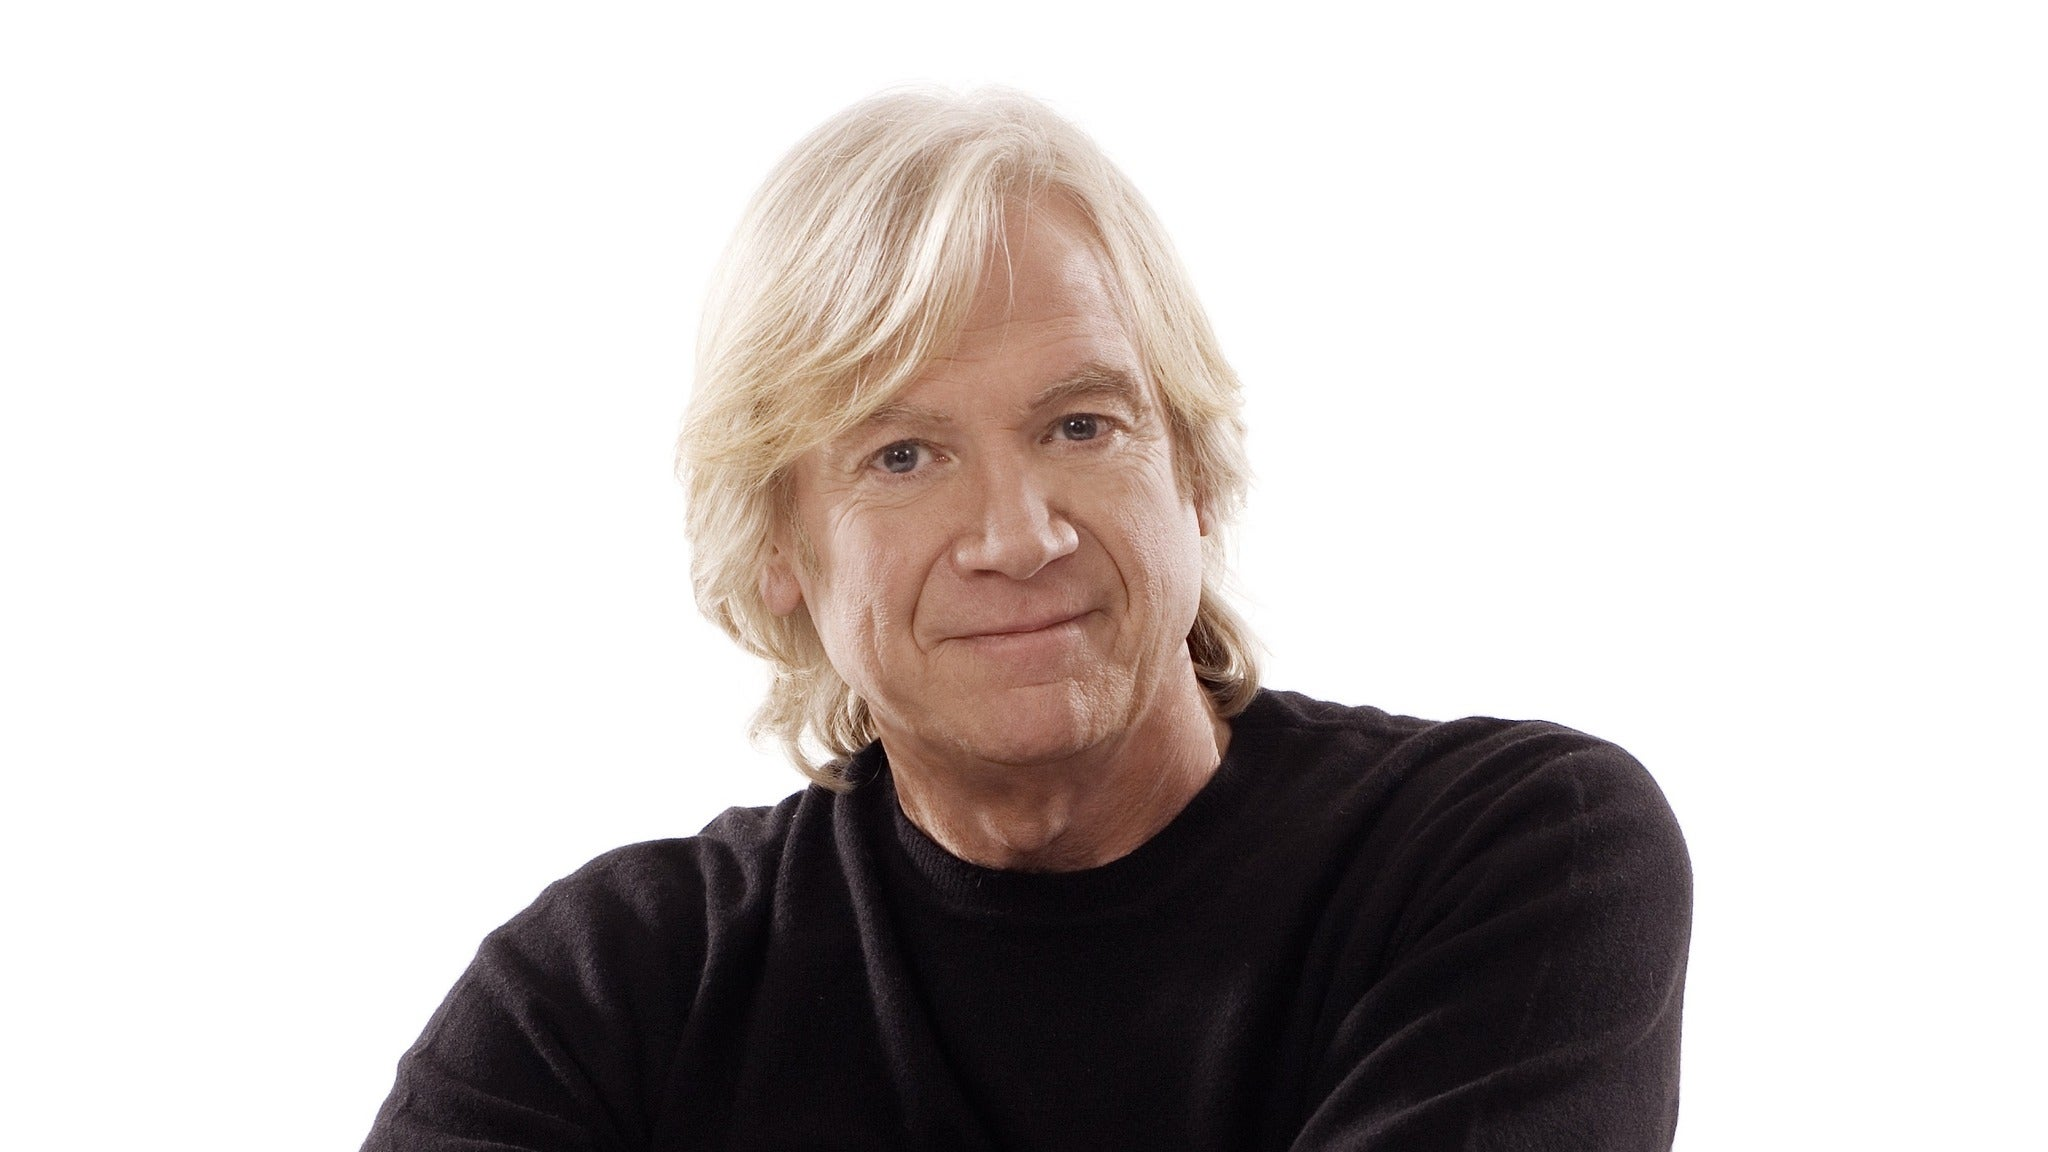 Justin Hayward at King Performing Arts Center